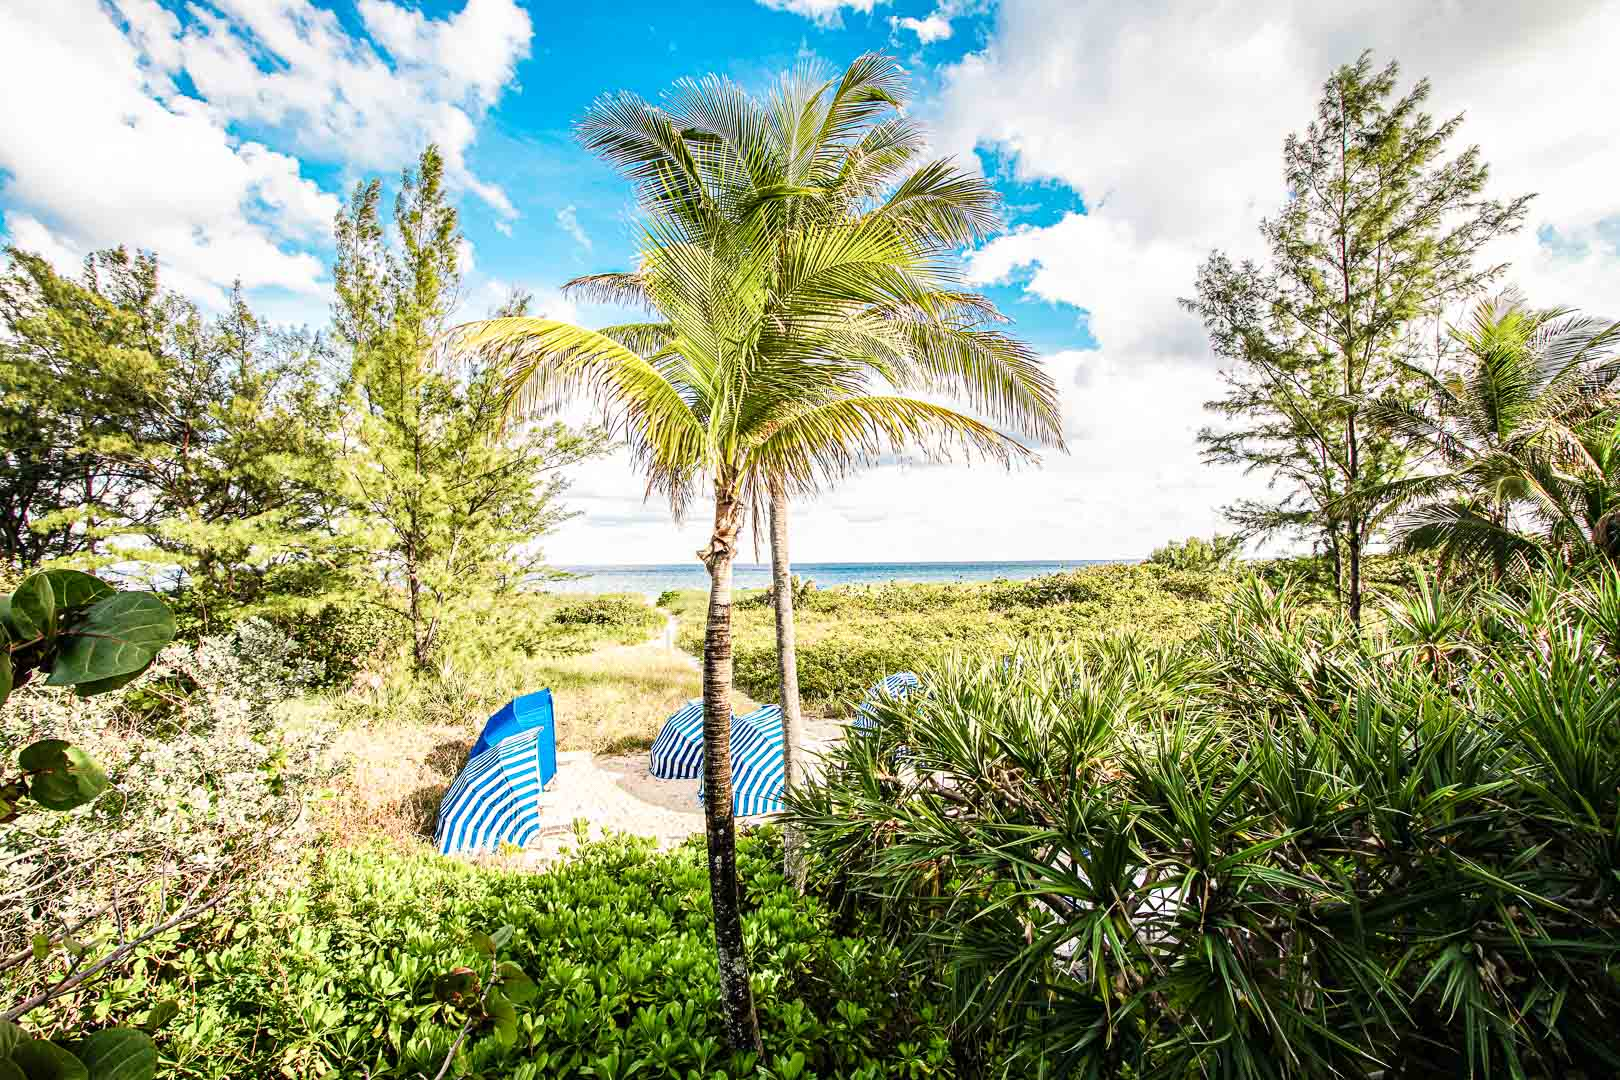 A relaxing view at VRI's Sand Dune Shores in Florida.